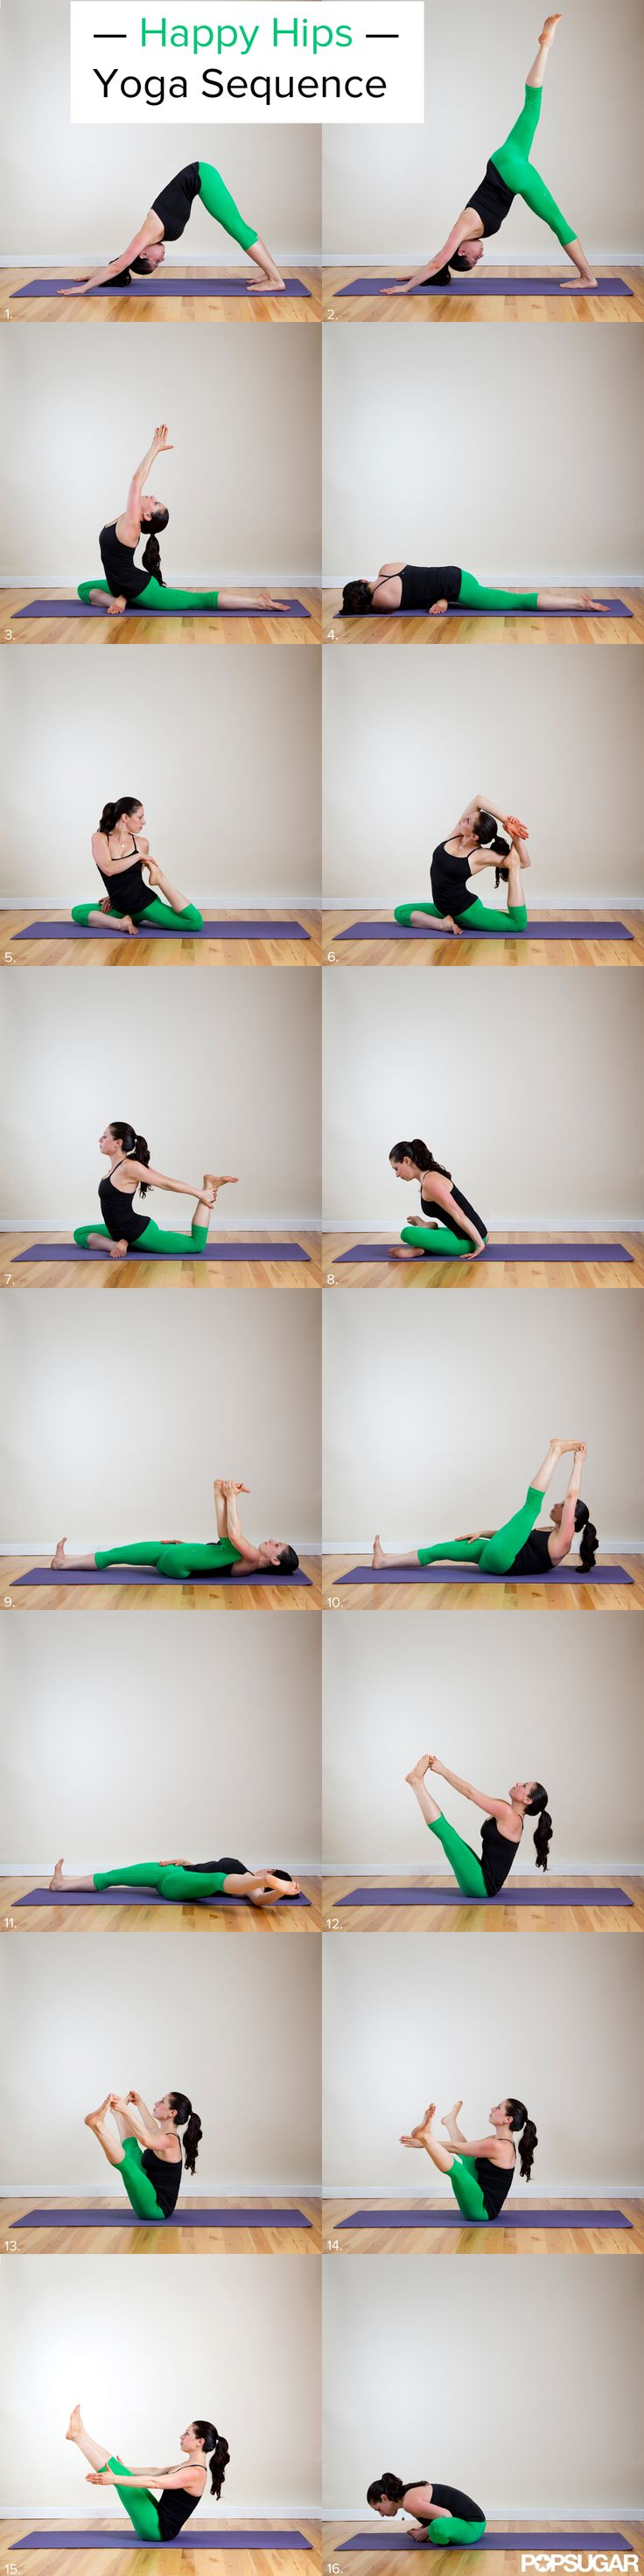 Happy Hips Yoga Sequence. This would be amazing after a long day of snow boarding! http://www.colegioclaret.org/story.php?title=yoga-accessories-|-cozy-orange-yoga-clothing-and-accessories